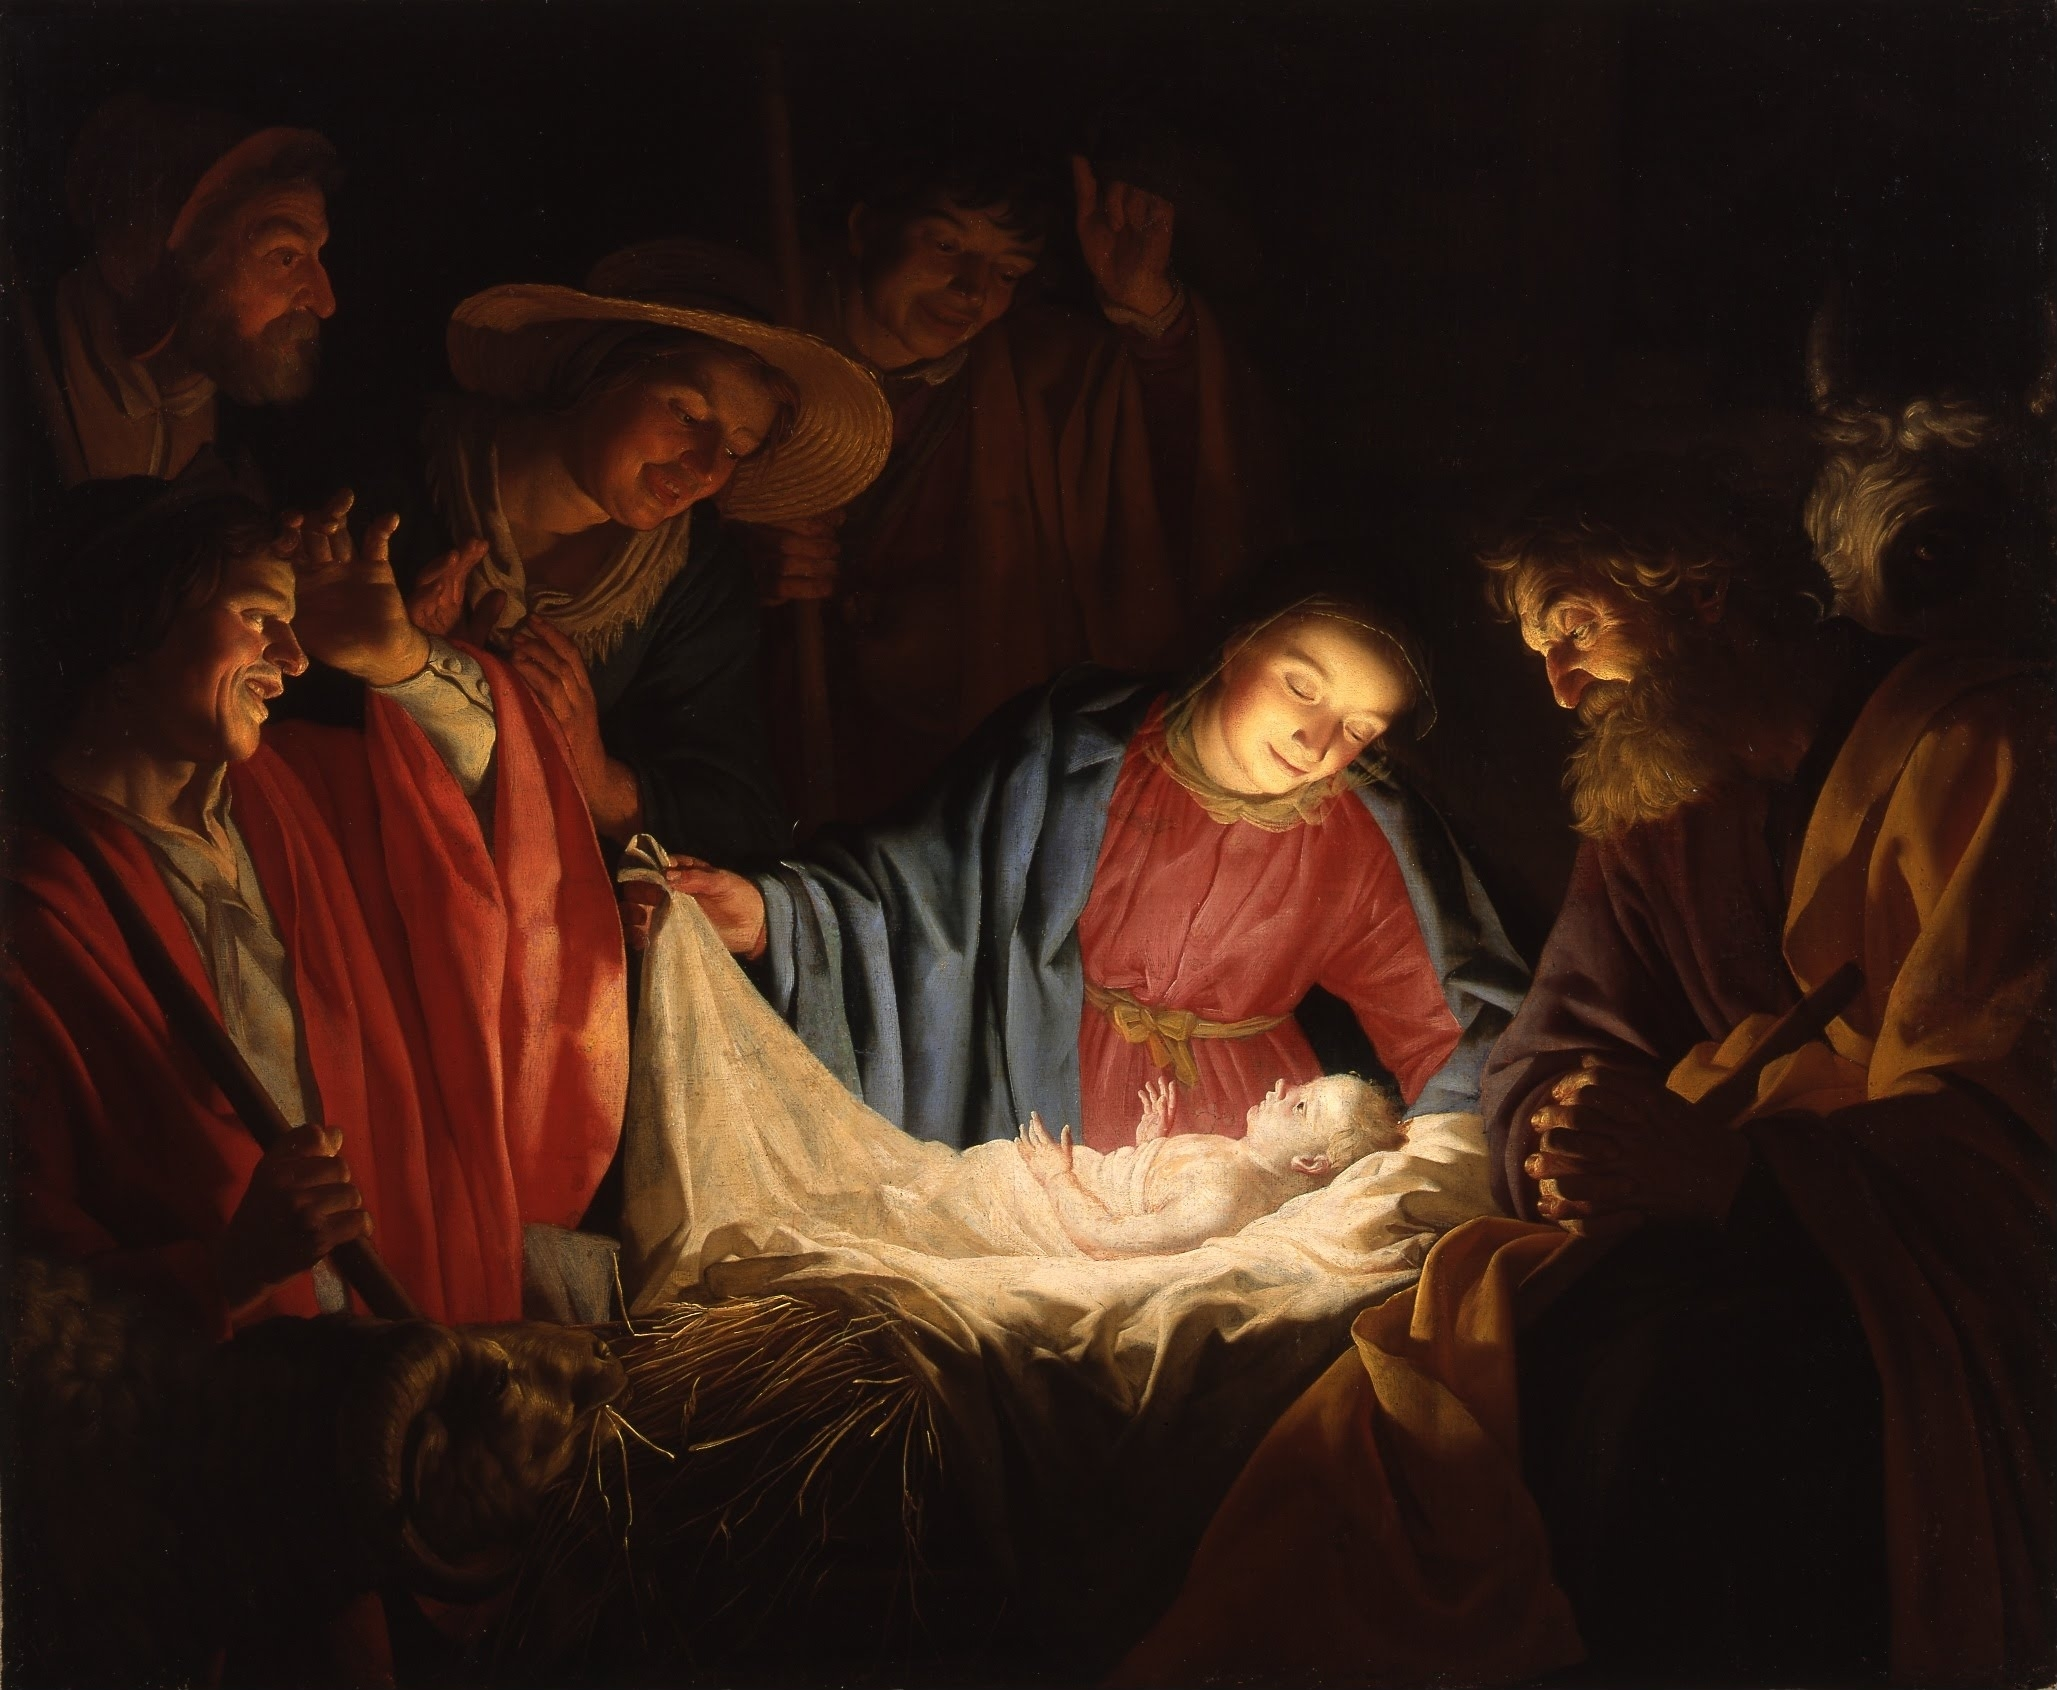 Nativity of Jesus - Wikipedia